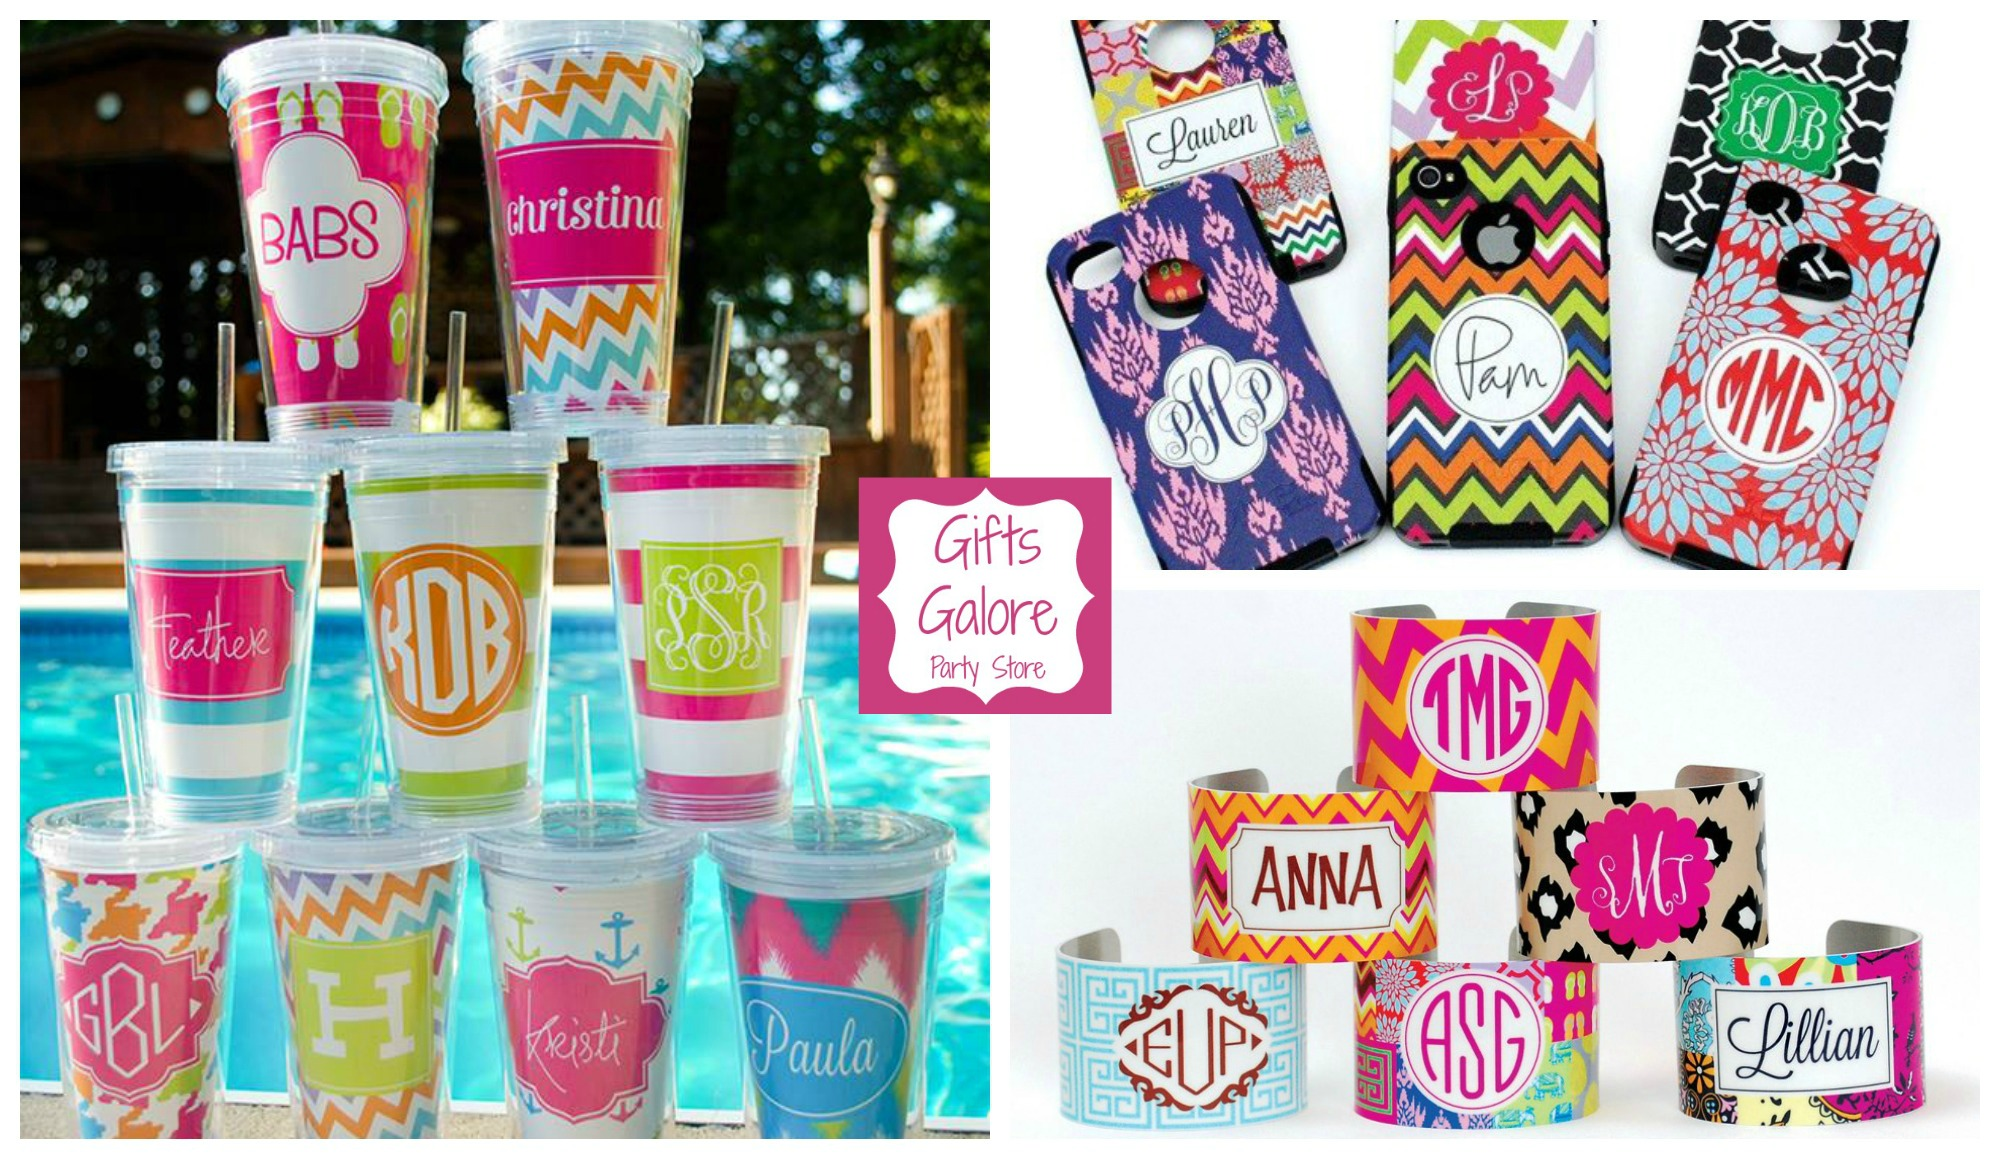 Gifts Galore Party Story has personalized accessories in trendy patterns, custom party supplies, and perfect gifts for your bridesmaids, sorority sisters and best friends.